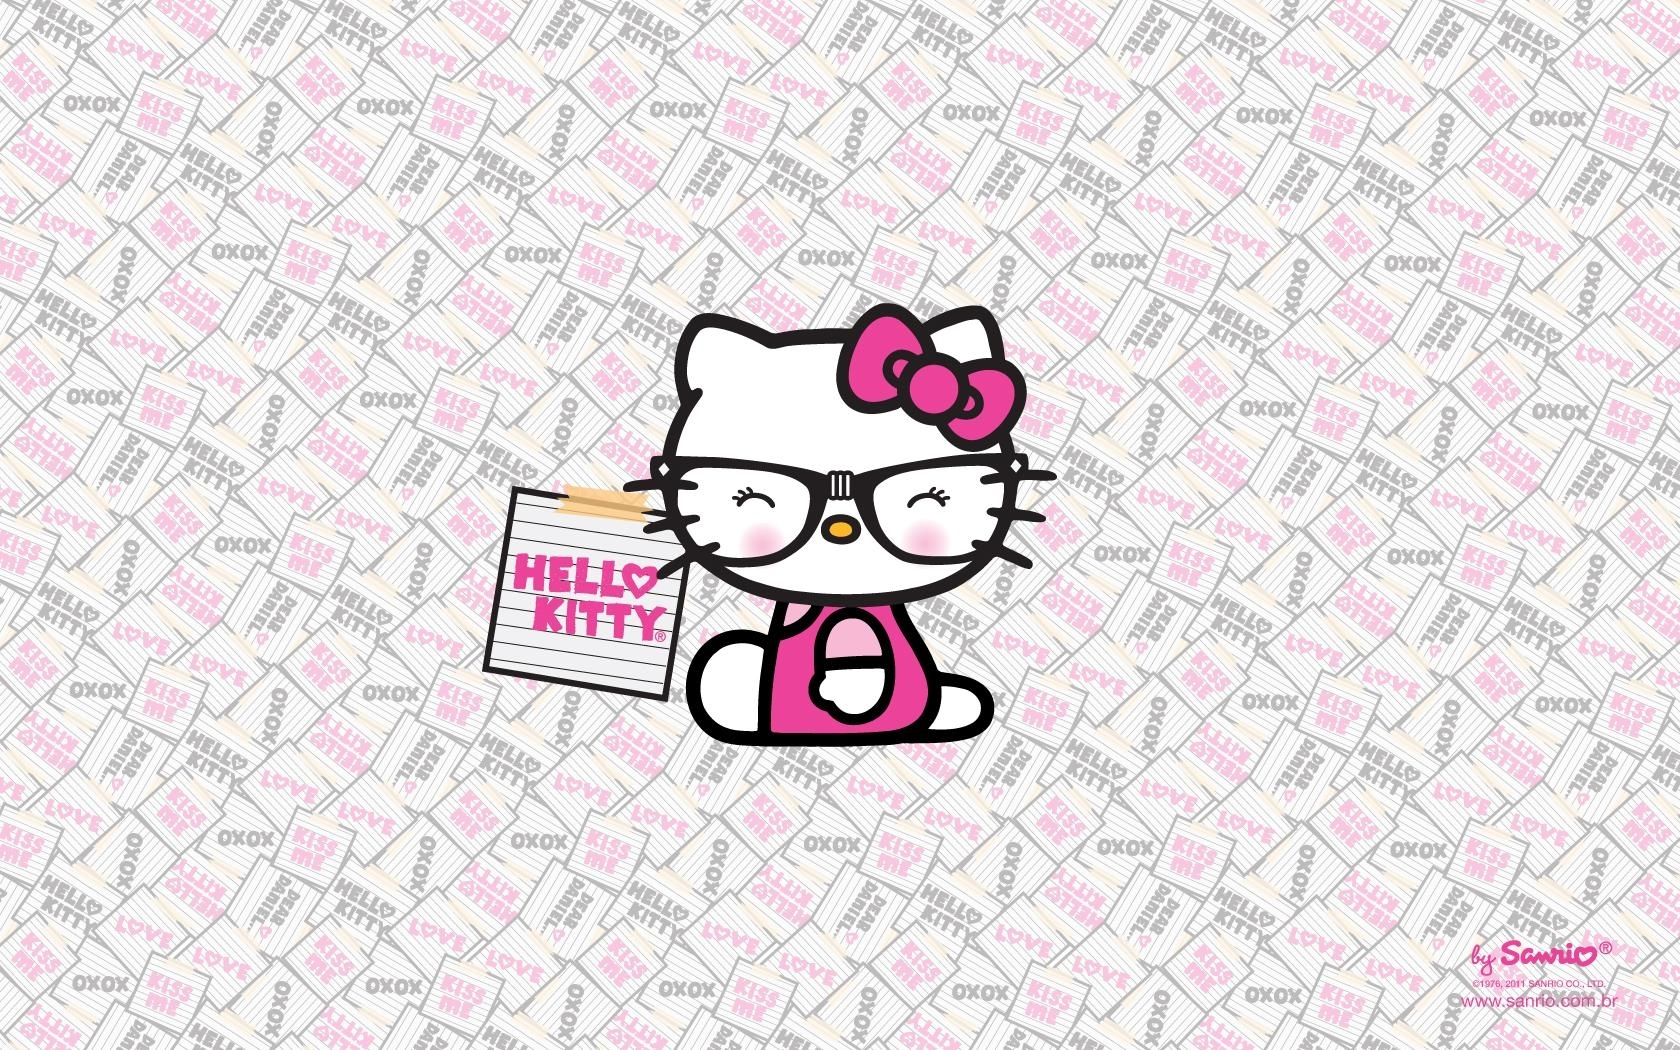 hello kitty wallpaper for computer ifkger - top backgrounds & wallpapers